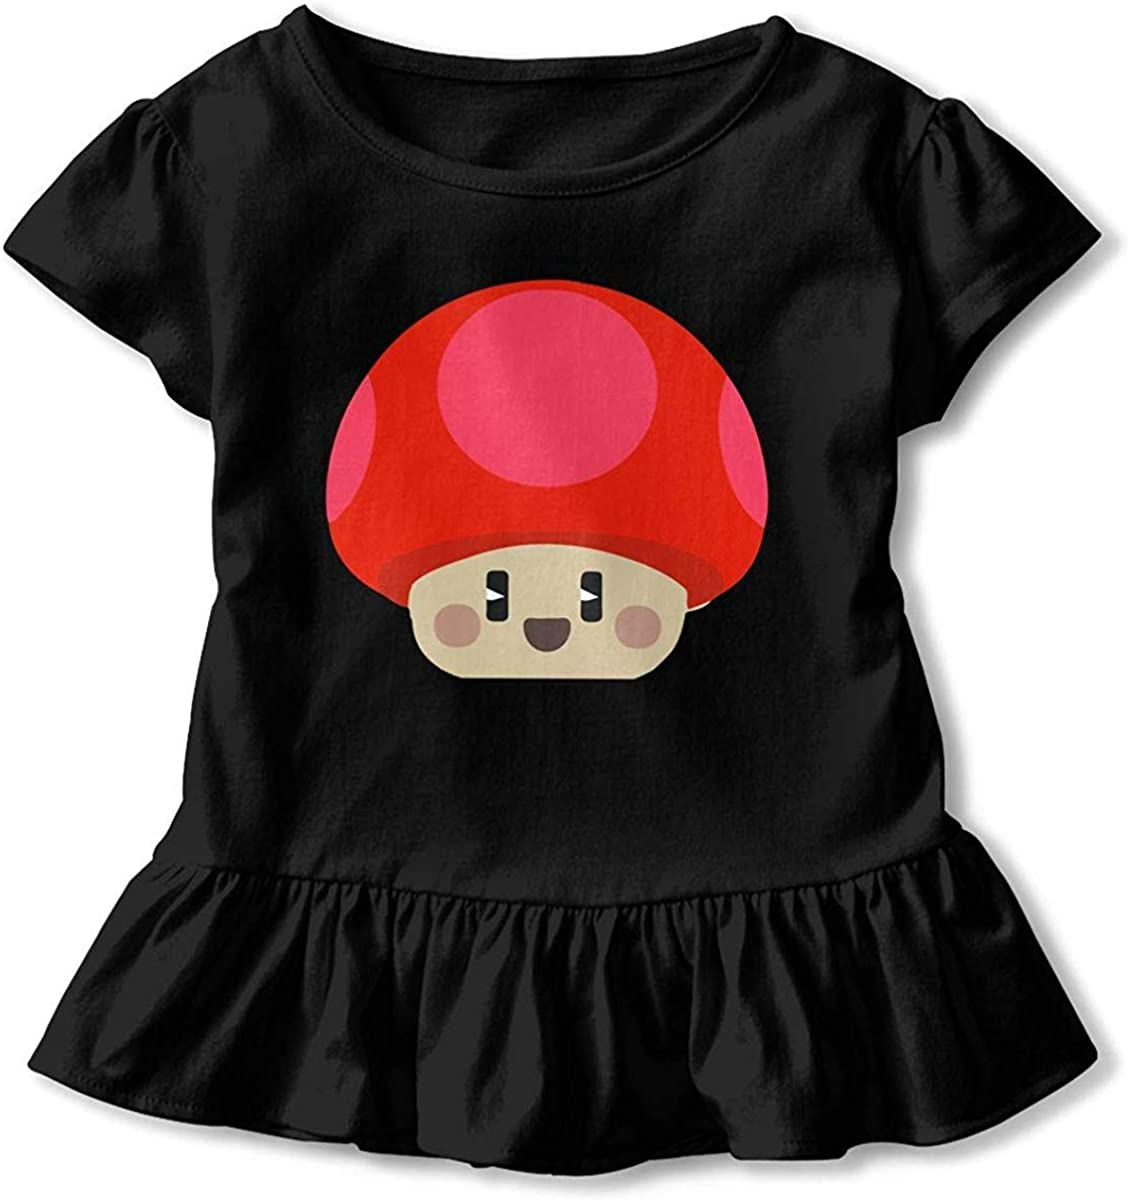 Toddler Baby Girl Nurse Heartbeat Funny Short Sleeve Cotton T Shirts Basic Tops Tee Clothes